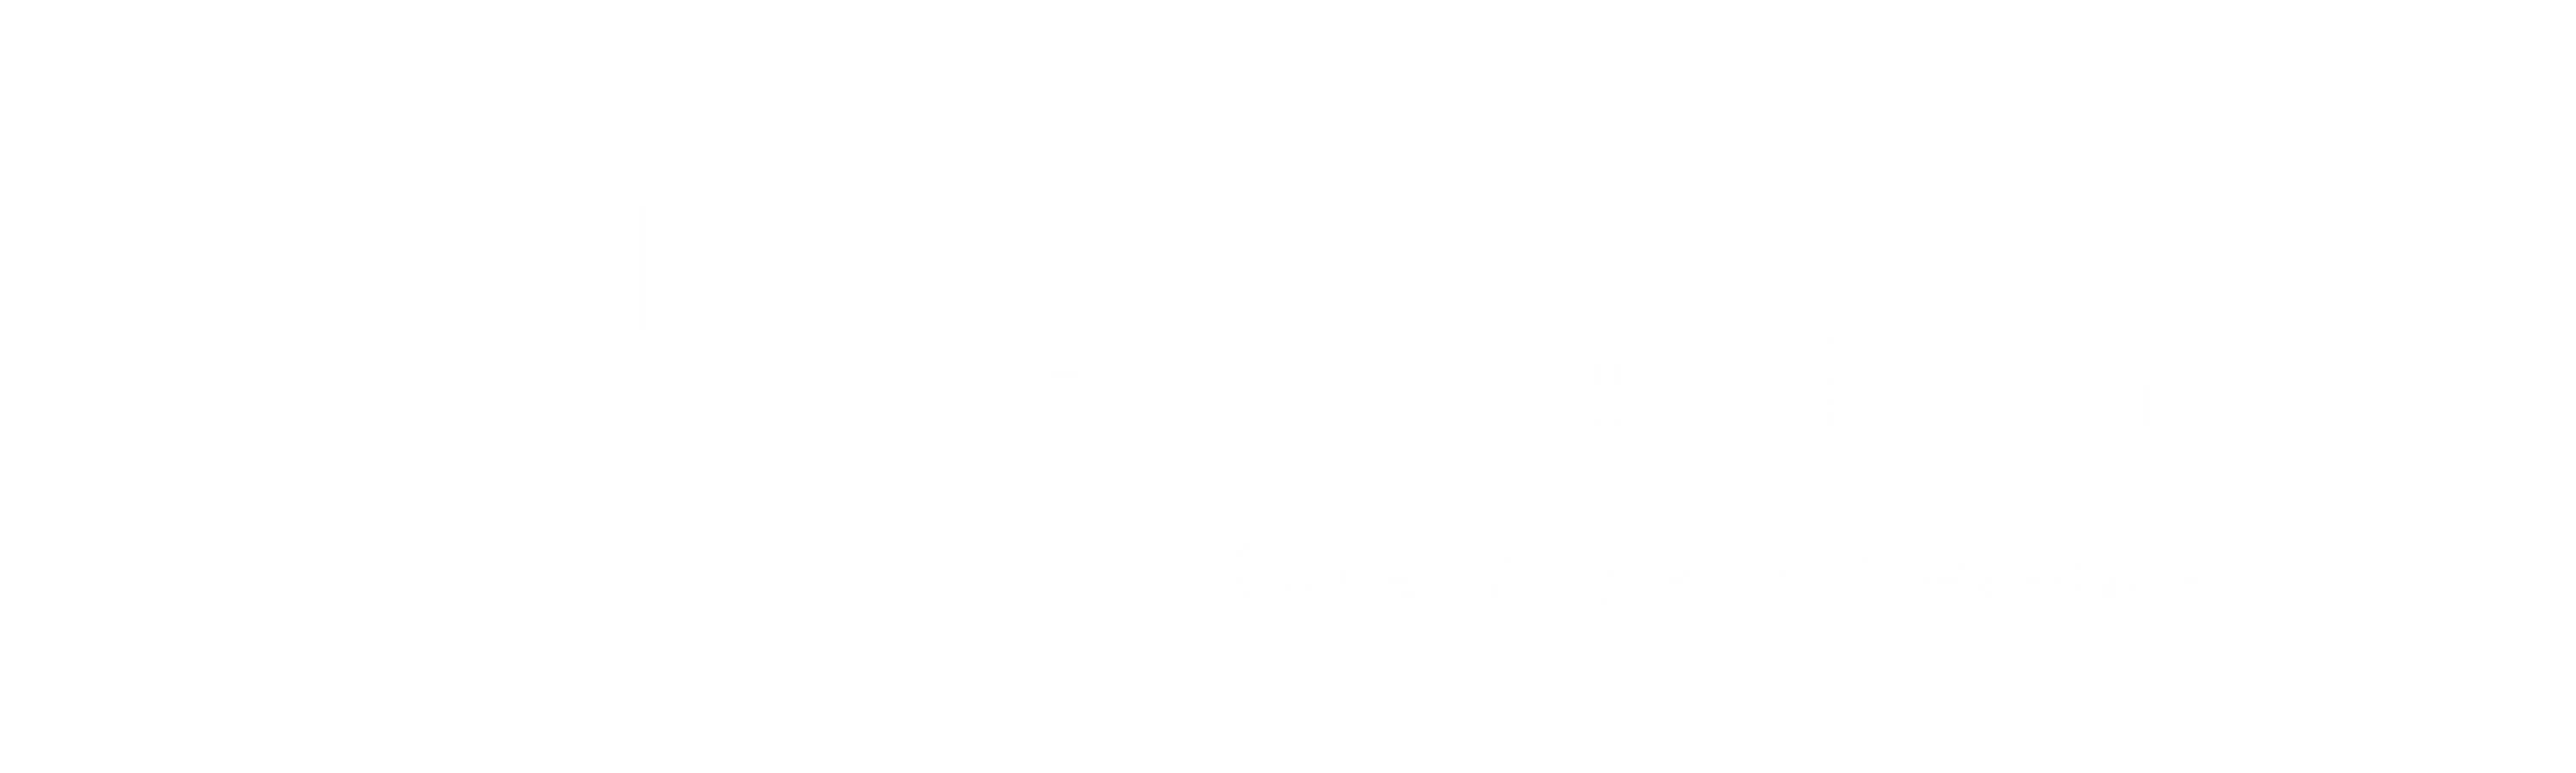 Quonference